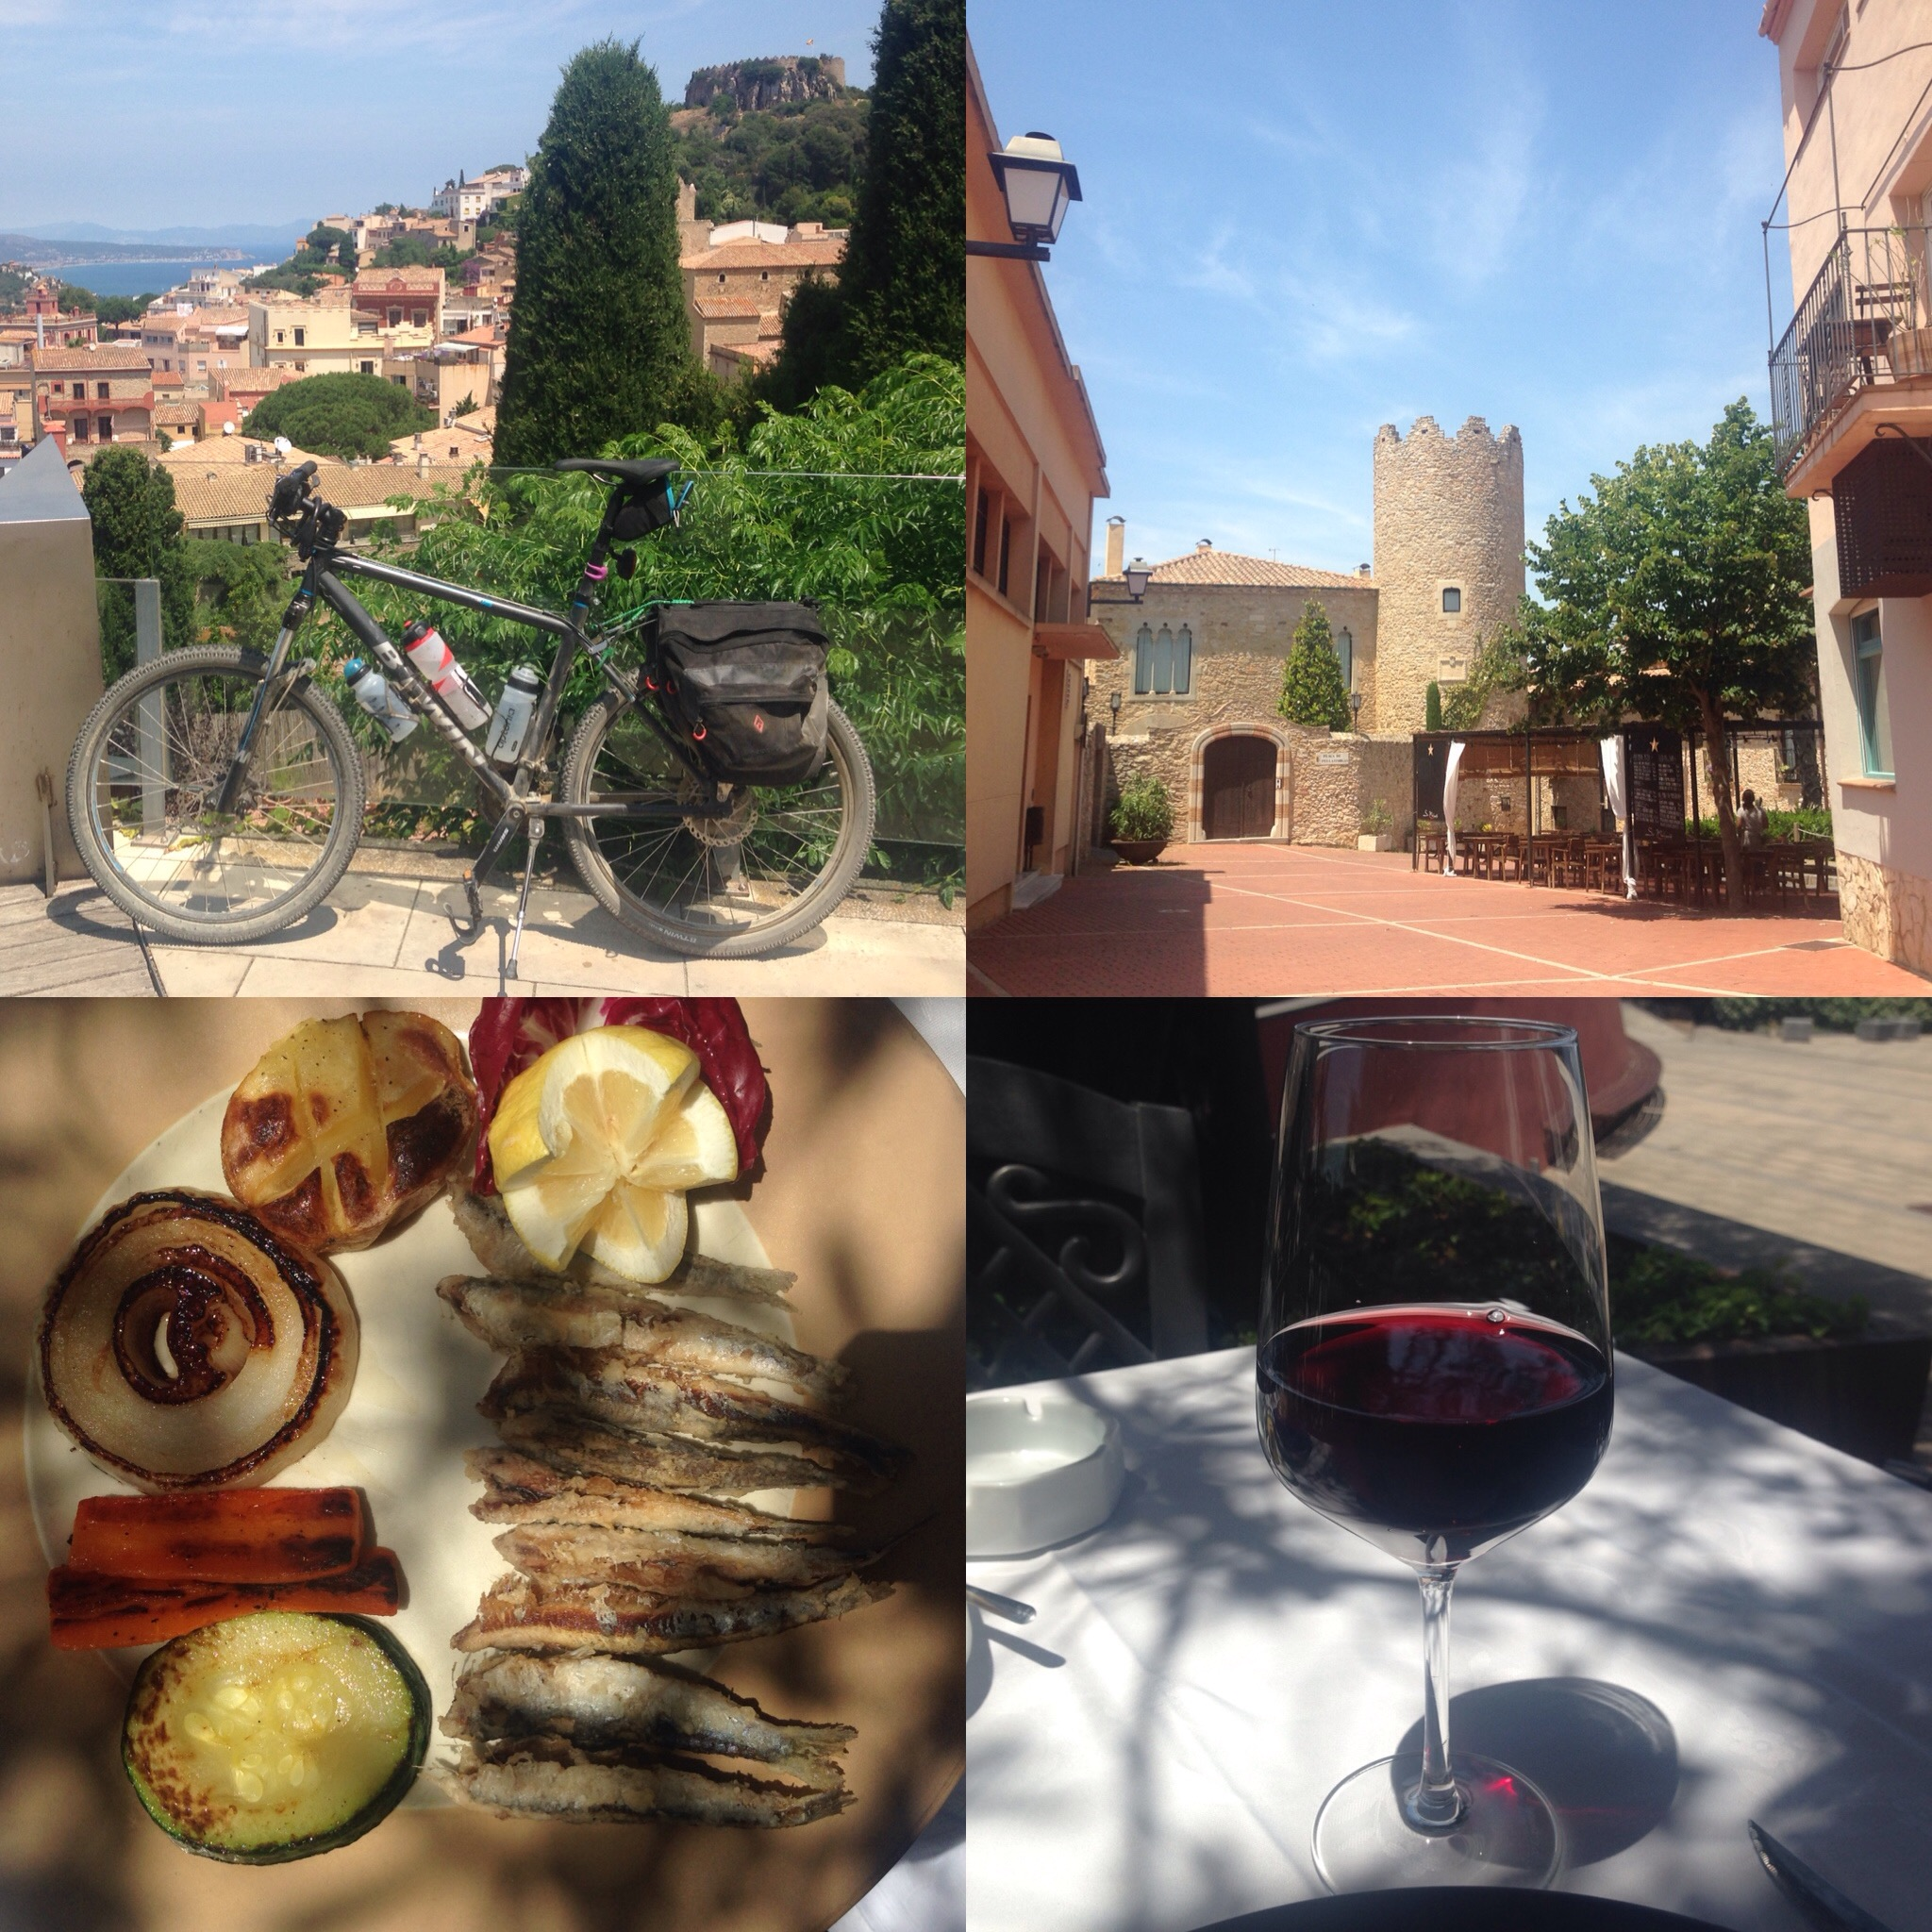 Eating and drinking in Begur village, Costa Brava